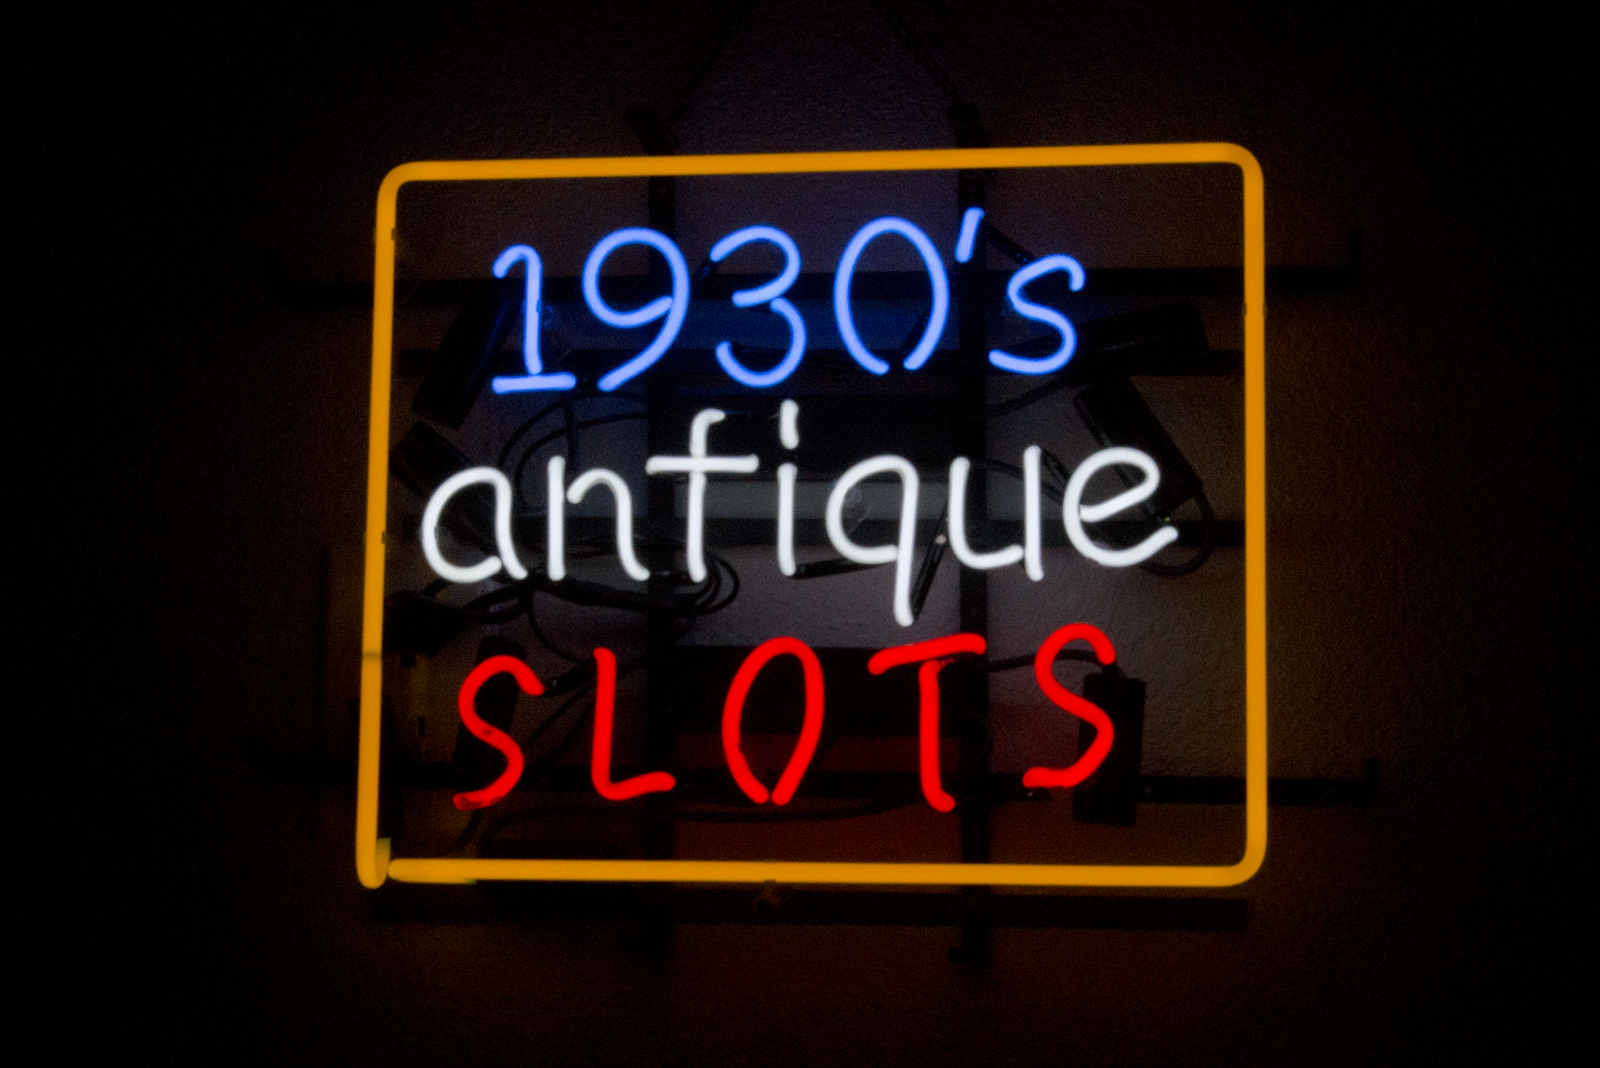 1930s_antique_slots.jpg